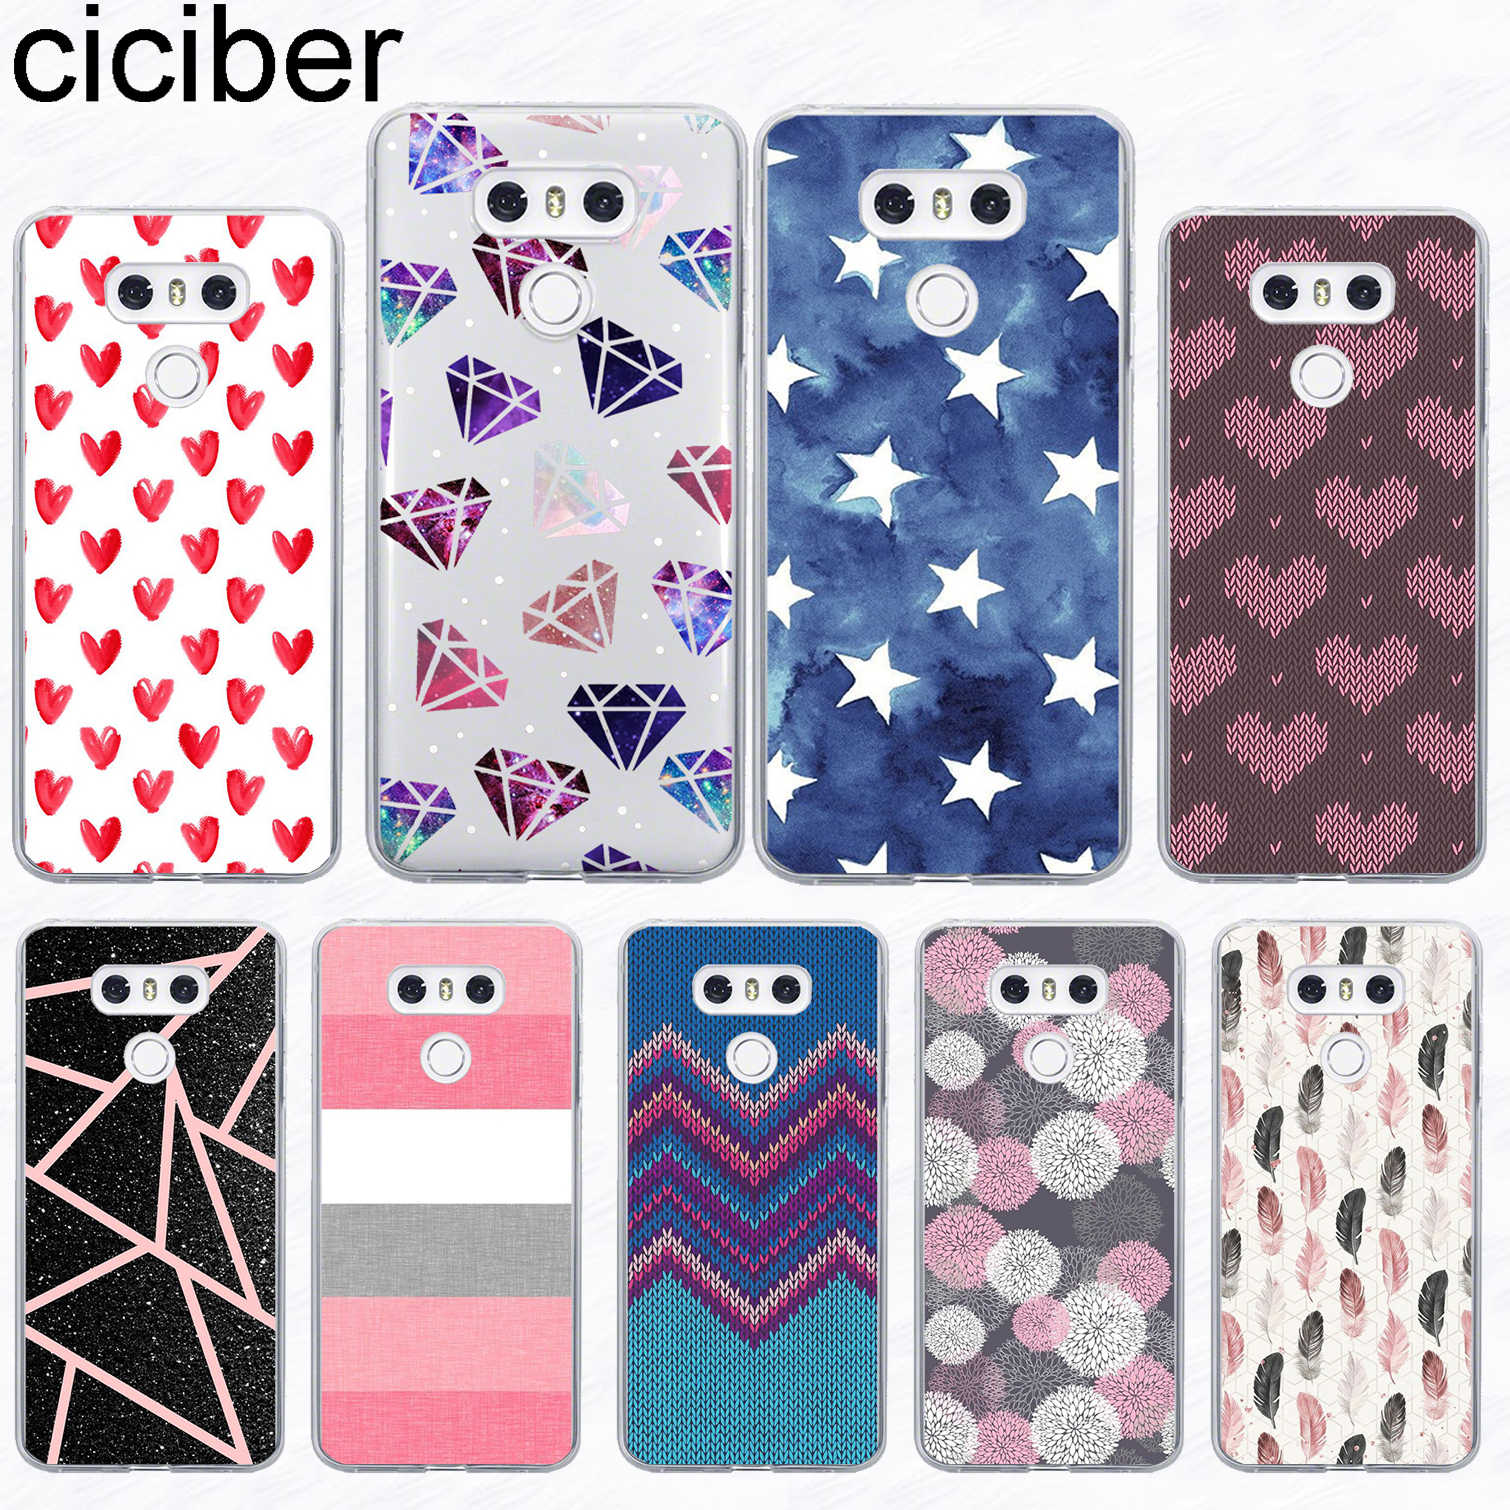 ciciber For LG G7 G6 G5 G4 V40 V35 V30 V20 THINQ Soft Silicone Phone Striped Diamond Case For LG K8 K10 K4 2017 2018 K9 K11 Plus